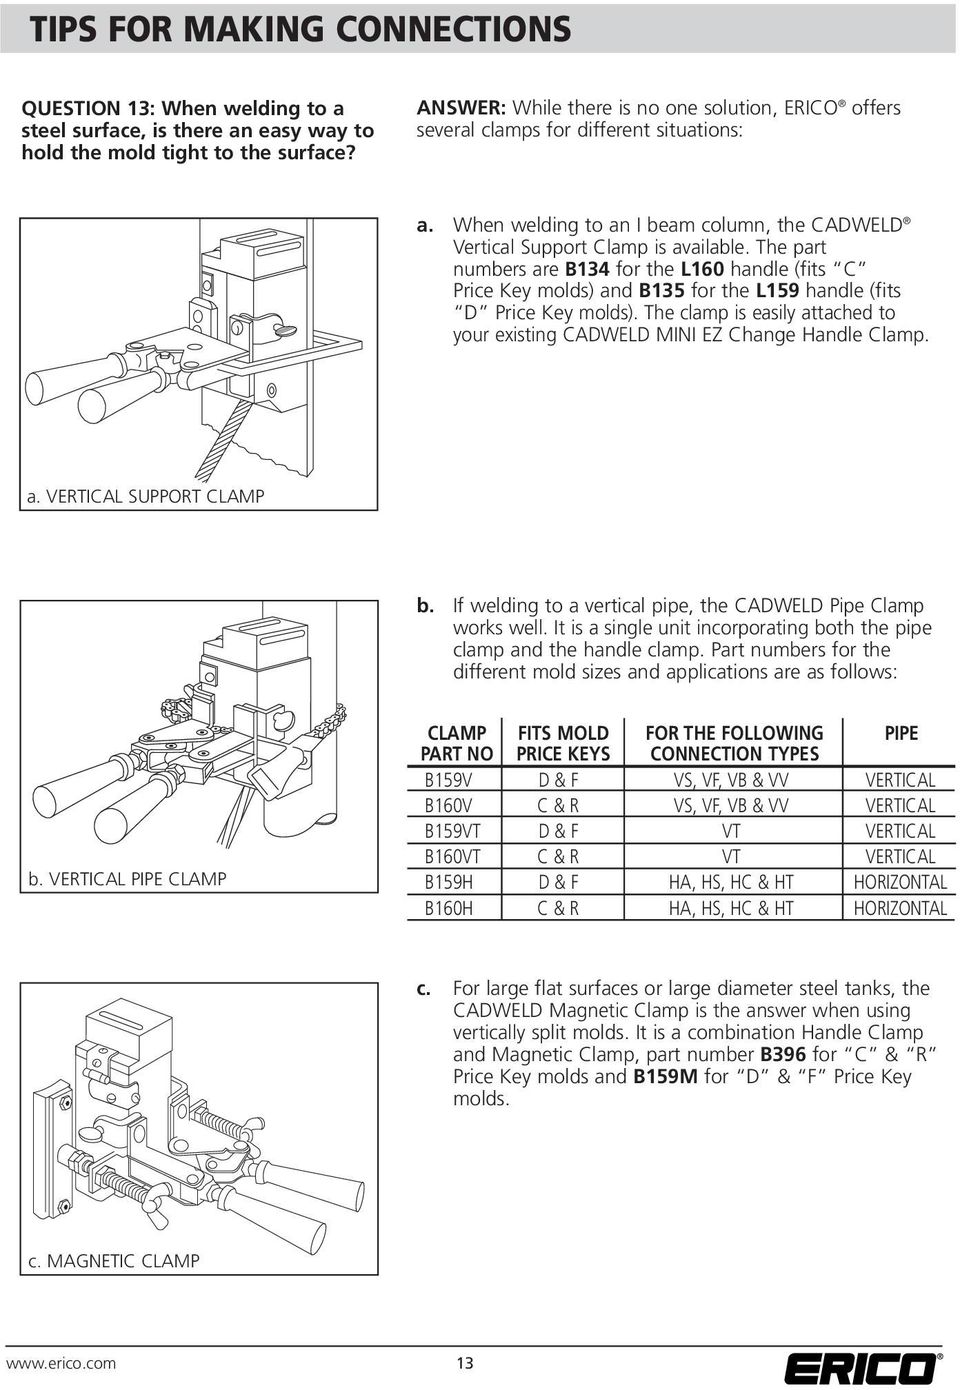 Contractor Tips For The Use Of Cadweld Products Pdf